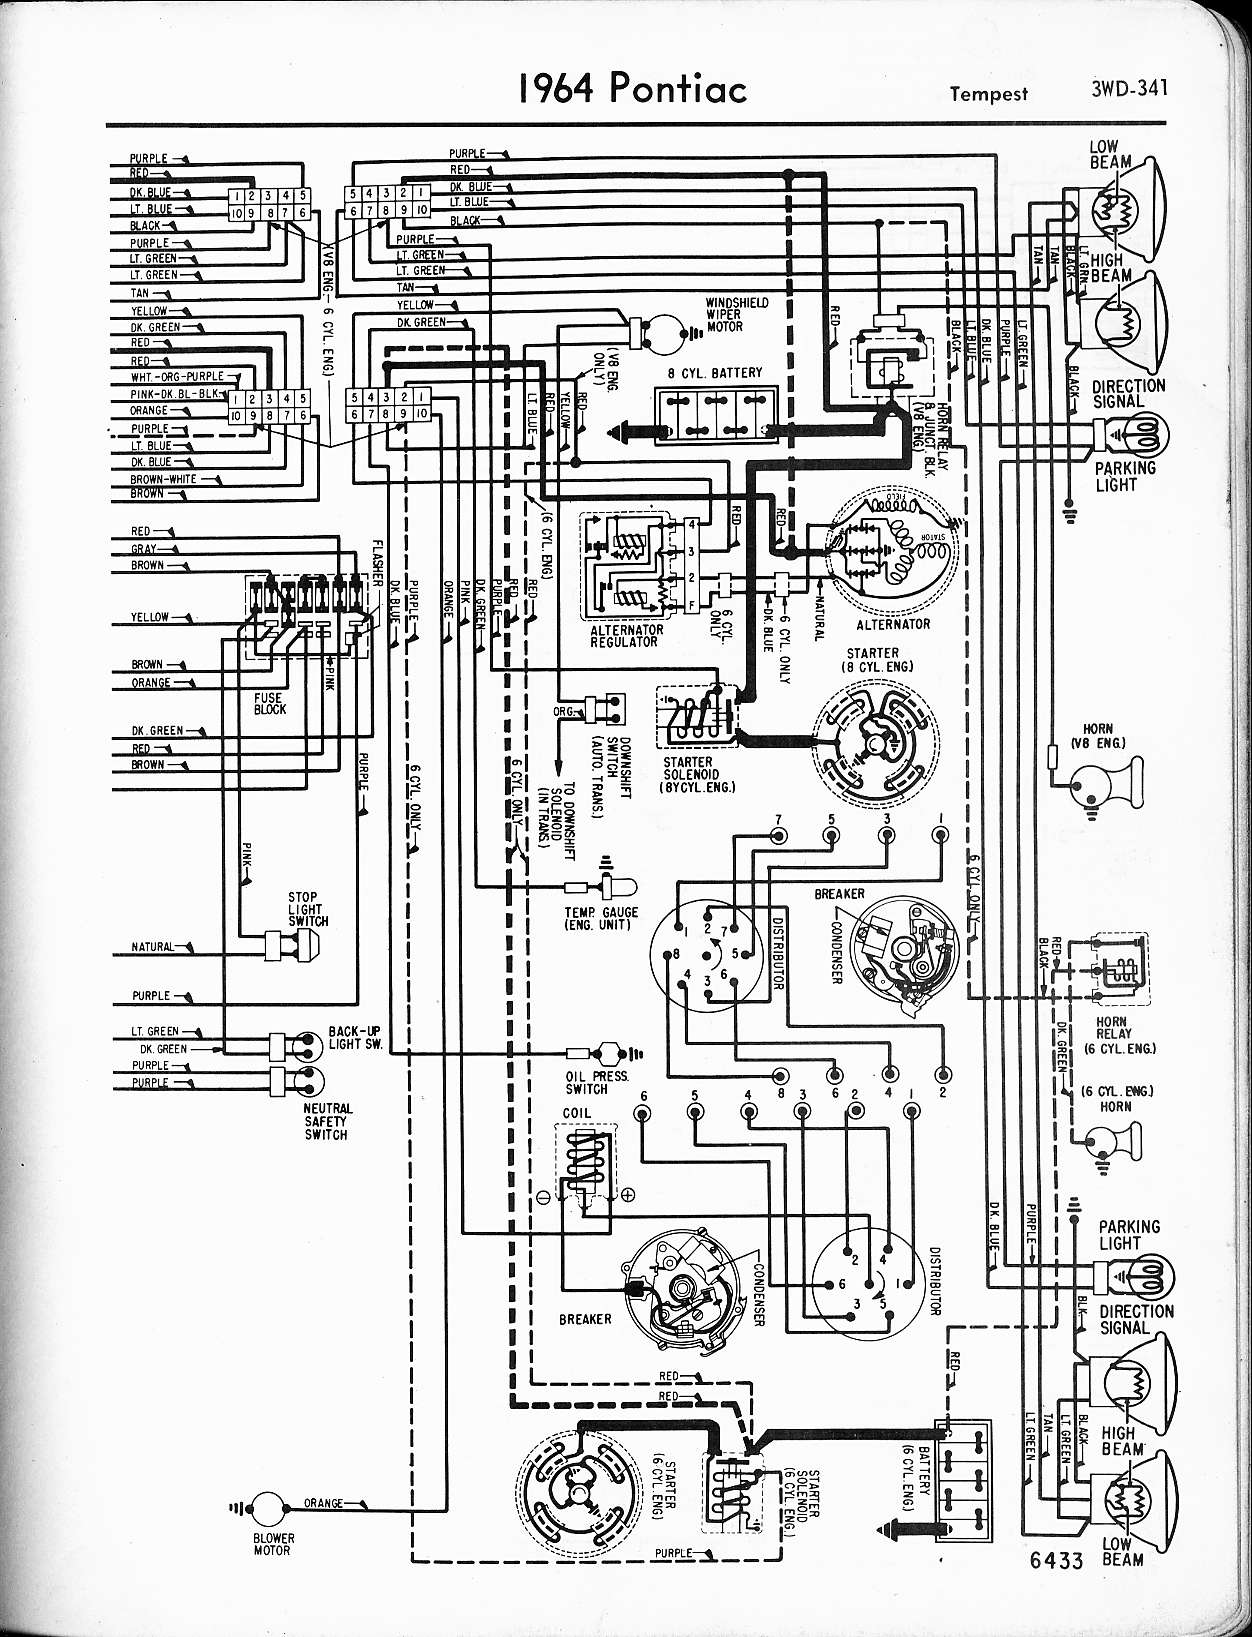 Gto Wiring Diagram - Wiring Diagram Dash on 1967 gto wiring diagram, 1970 oldsmobile wiring diagram, 1970 challenger wiring diagram, 1970 camaro wiring diagram, 1970 blazer wiring diagram, 1970 jeep wiring diagram, 1970 corvette wiring diagram, 68 gto dash wiring diagram, 1970 fairlane wiring diagram, 1969 gto wiring diagram, 2005 gto wiring diagram, 1966 gto wiring diagram, 1970 gto oil filter, 1964 gto wiring diagram, 1970 mustang wiring diagram, 2004 gto wiring diagram, 1971 gto wiring diagram, 1970 malibu wiring diagram, 1965 gto wiring diagram, 1970 nova wiring diagram,